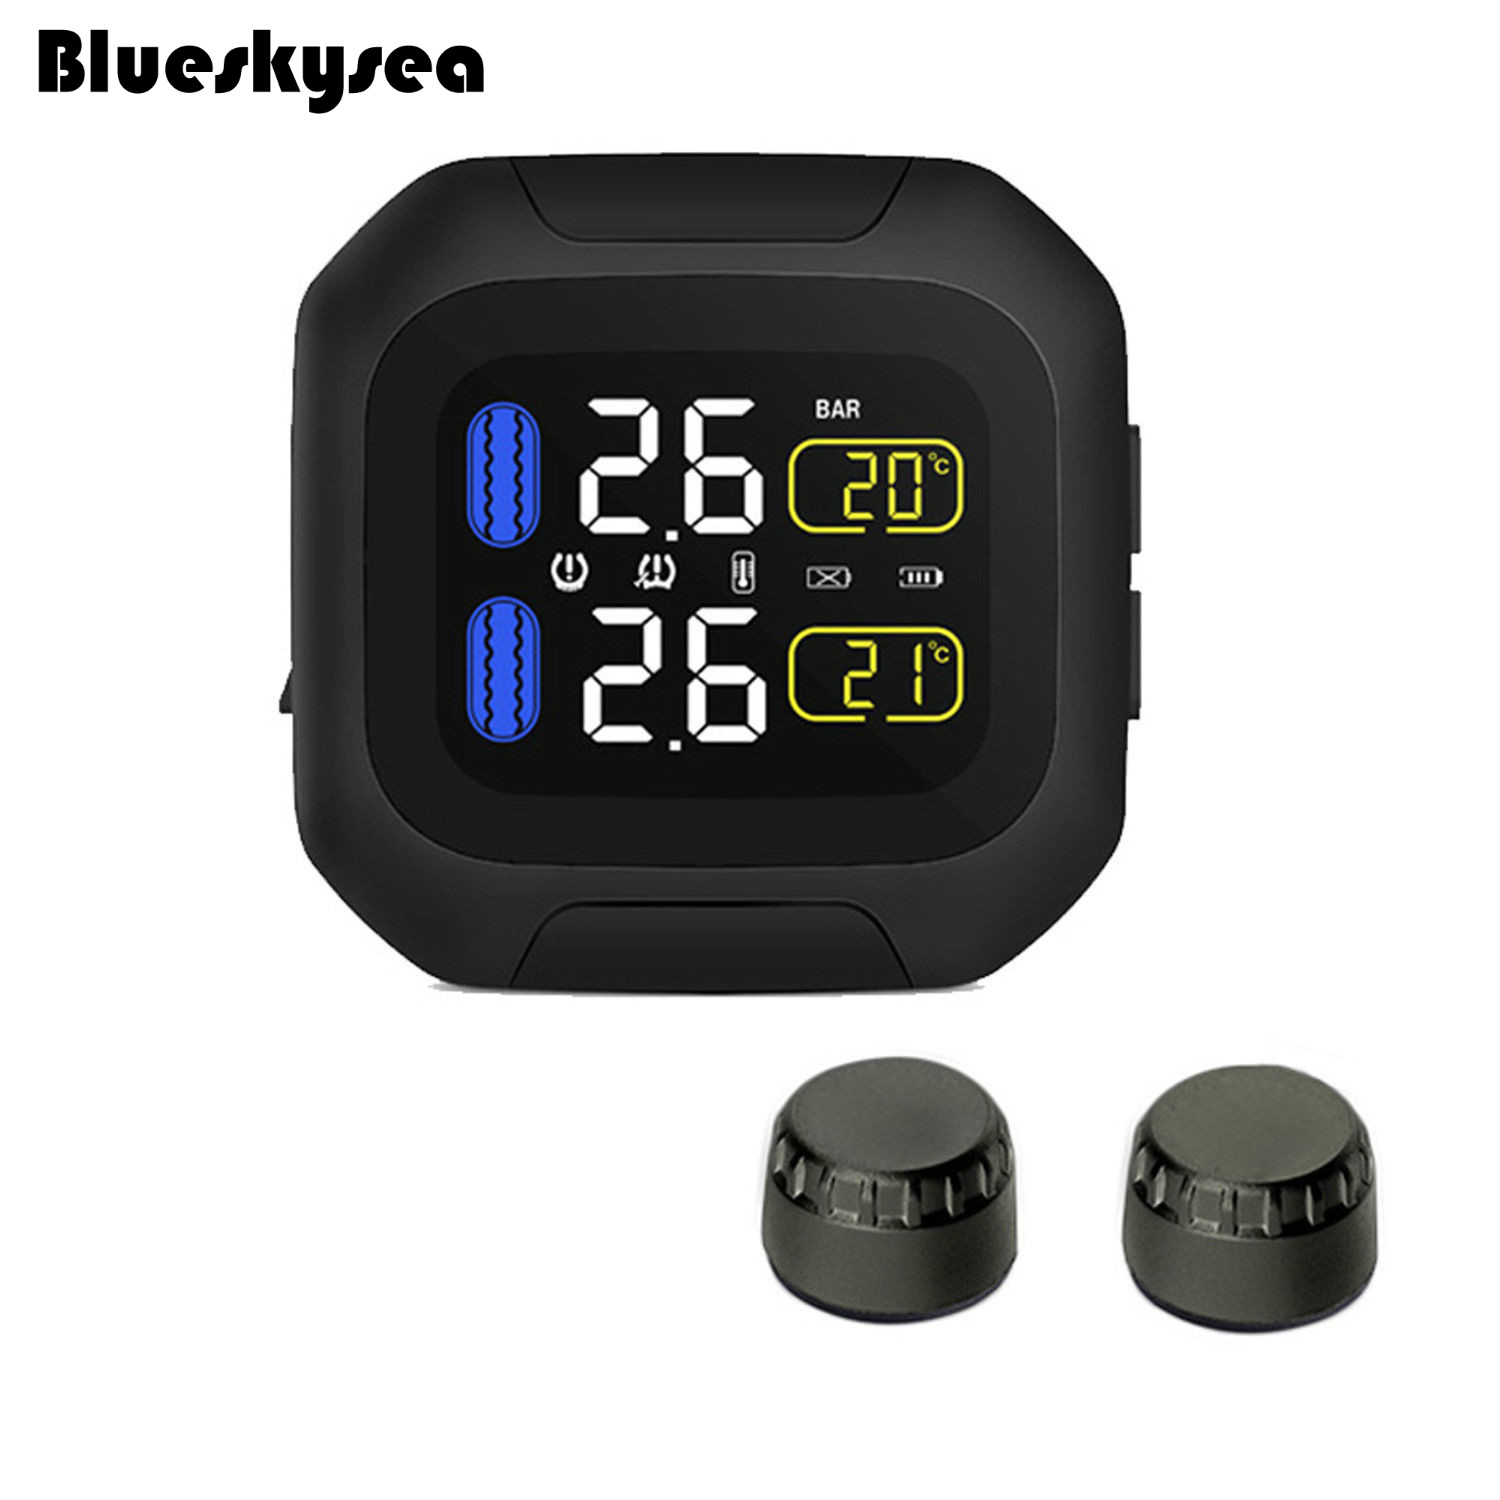 Blueskysea Wireless Motorcycle font b TPMS b font Tire Pressure Monitor Tempreature with External Sensors Waterproof